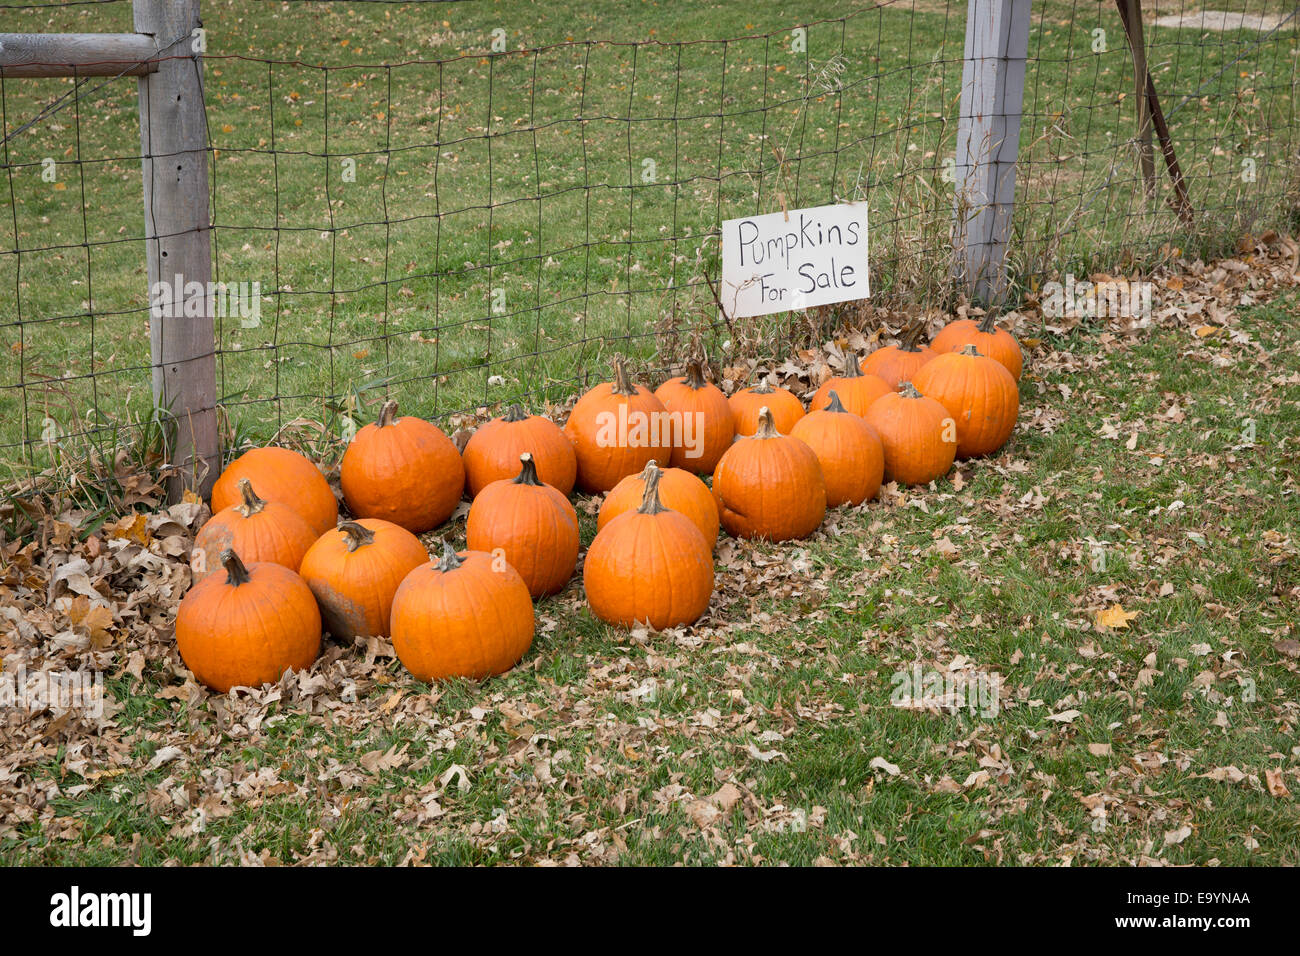 Crop of pumpkins for sale along a fence - Stock Image